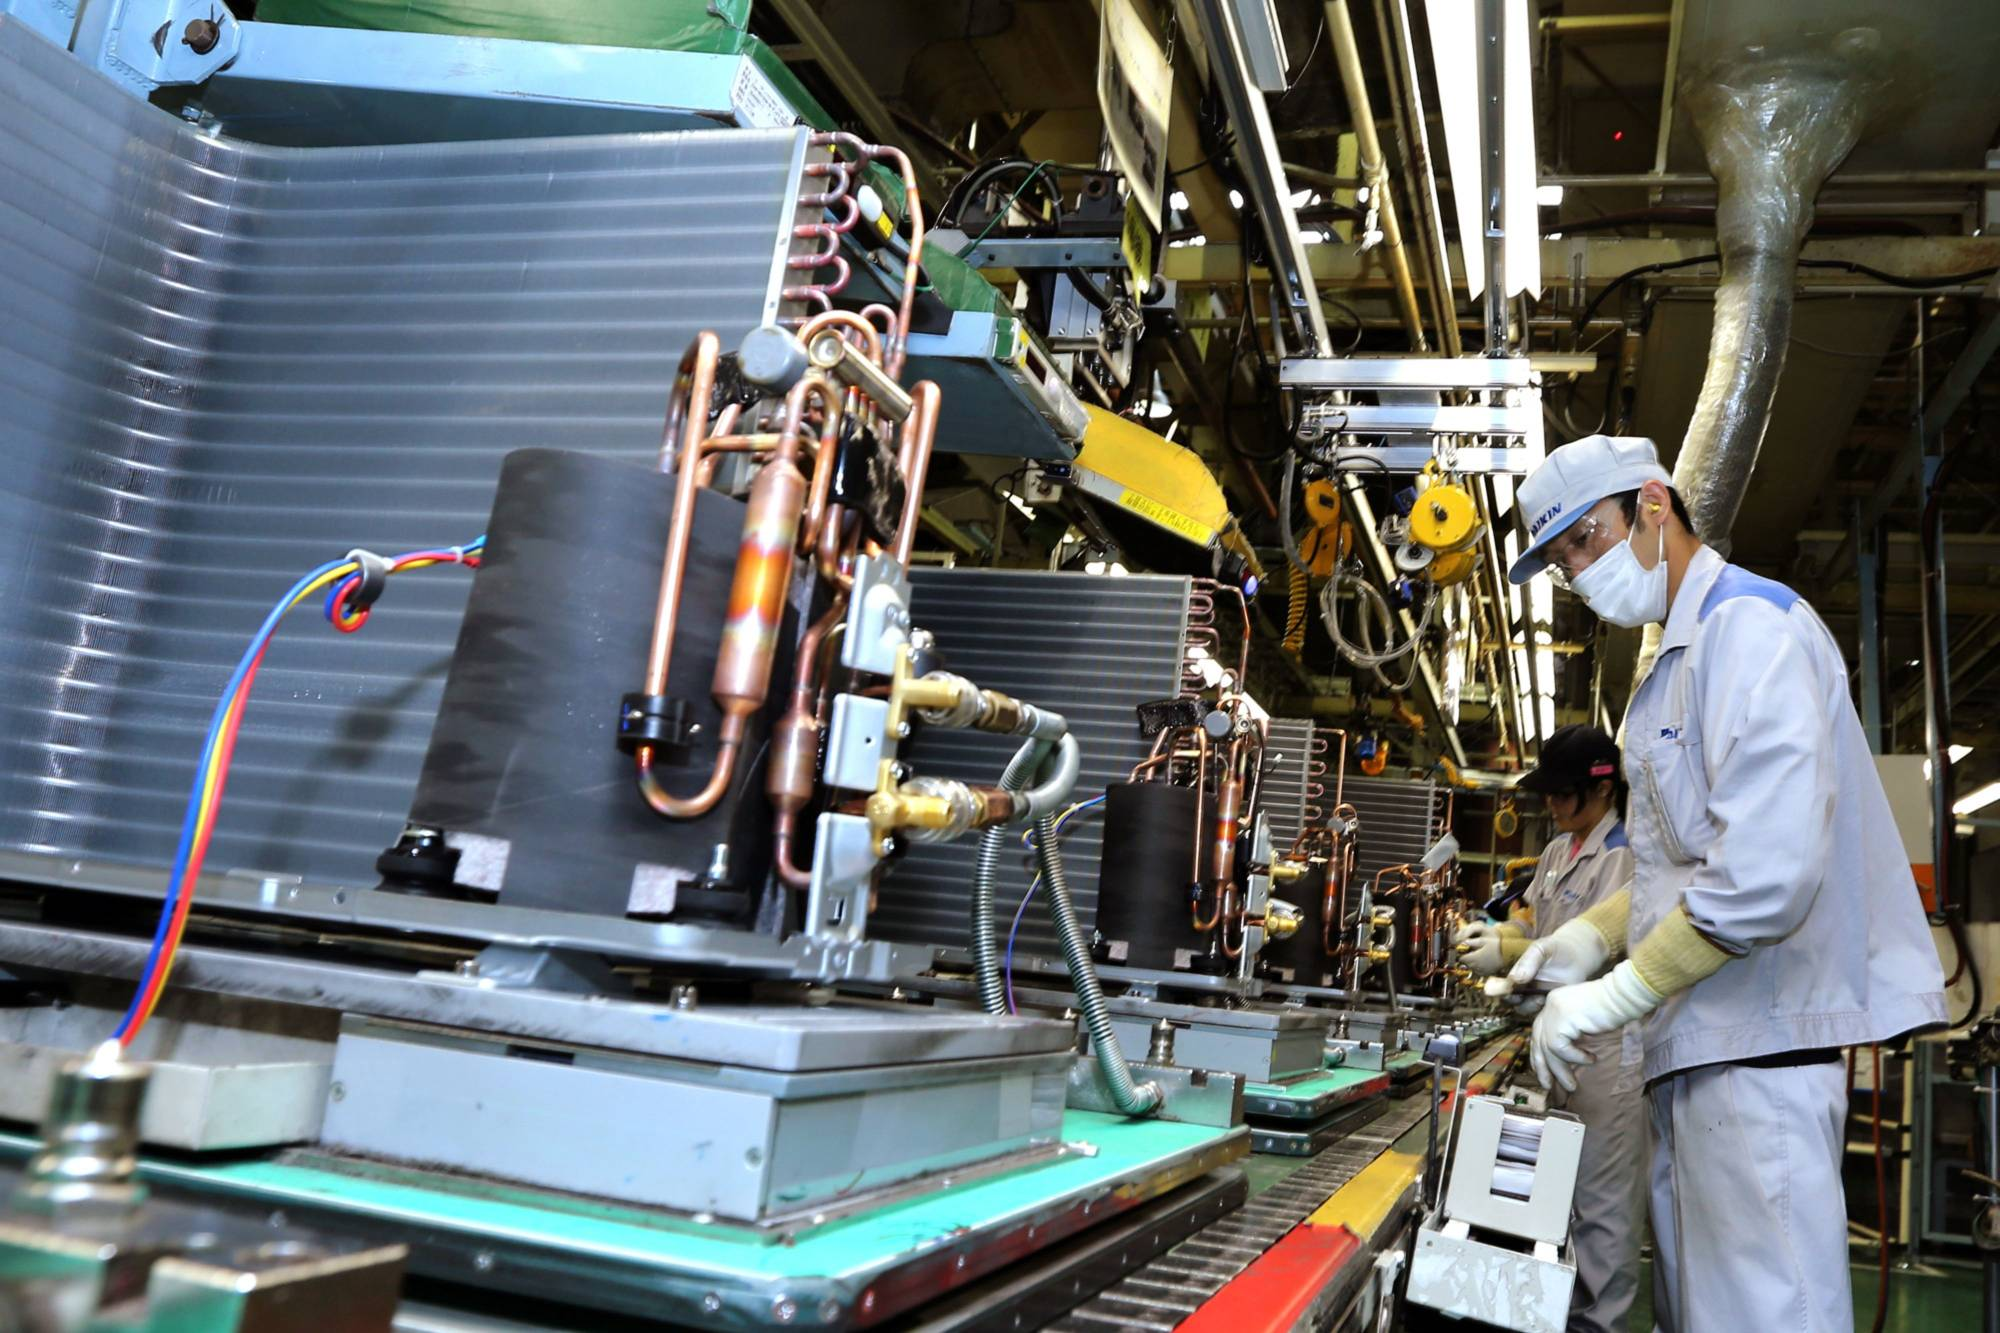 Workers assemble outdoor air conditioner units on the production line of Daikin Industries Ltd.'s plant in Kusatsu, Shiga Prefecture, in August 2017. | BLOOMBERG